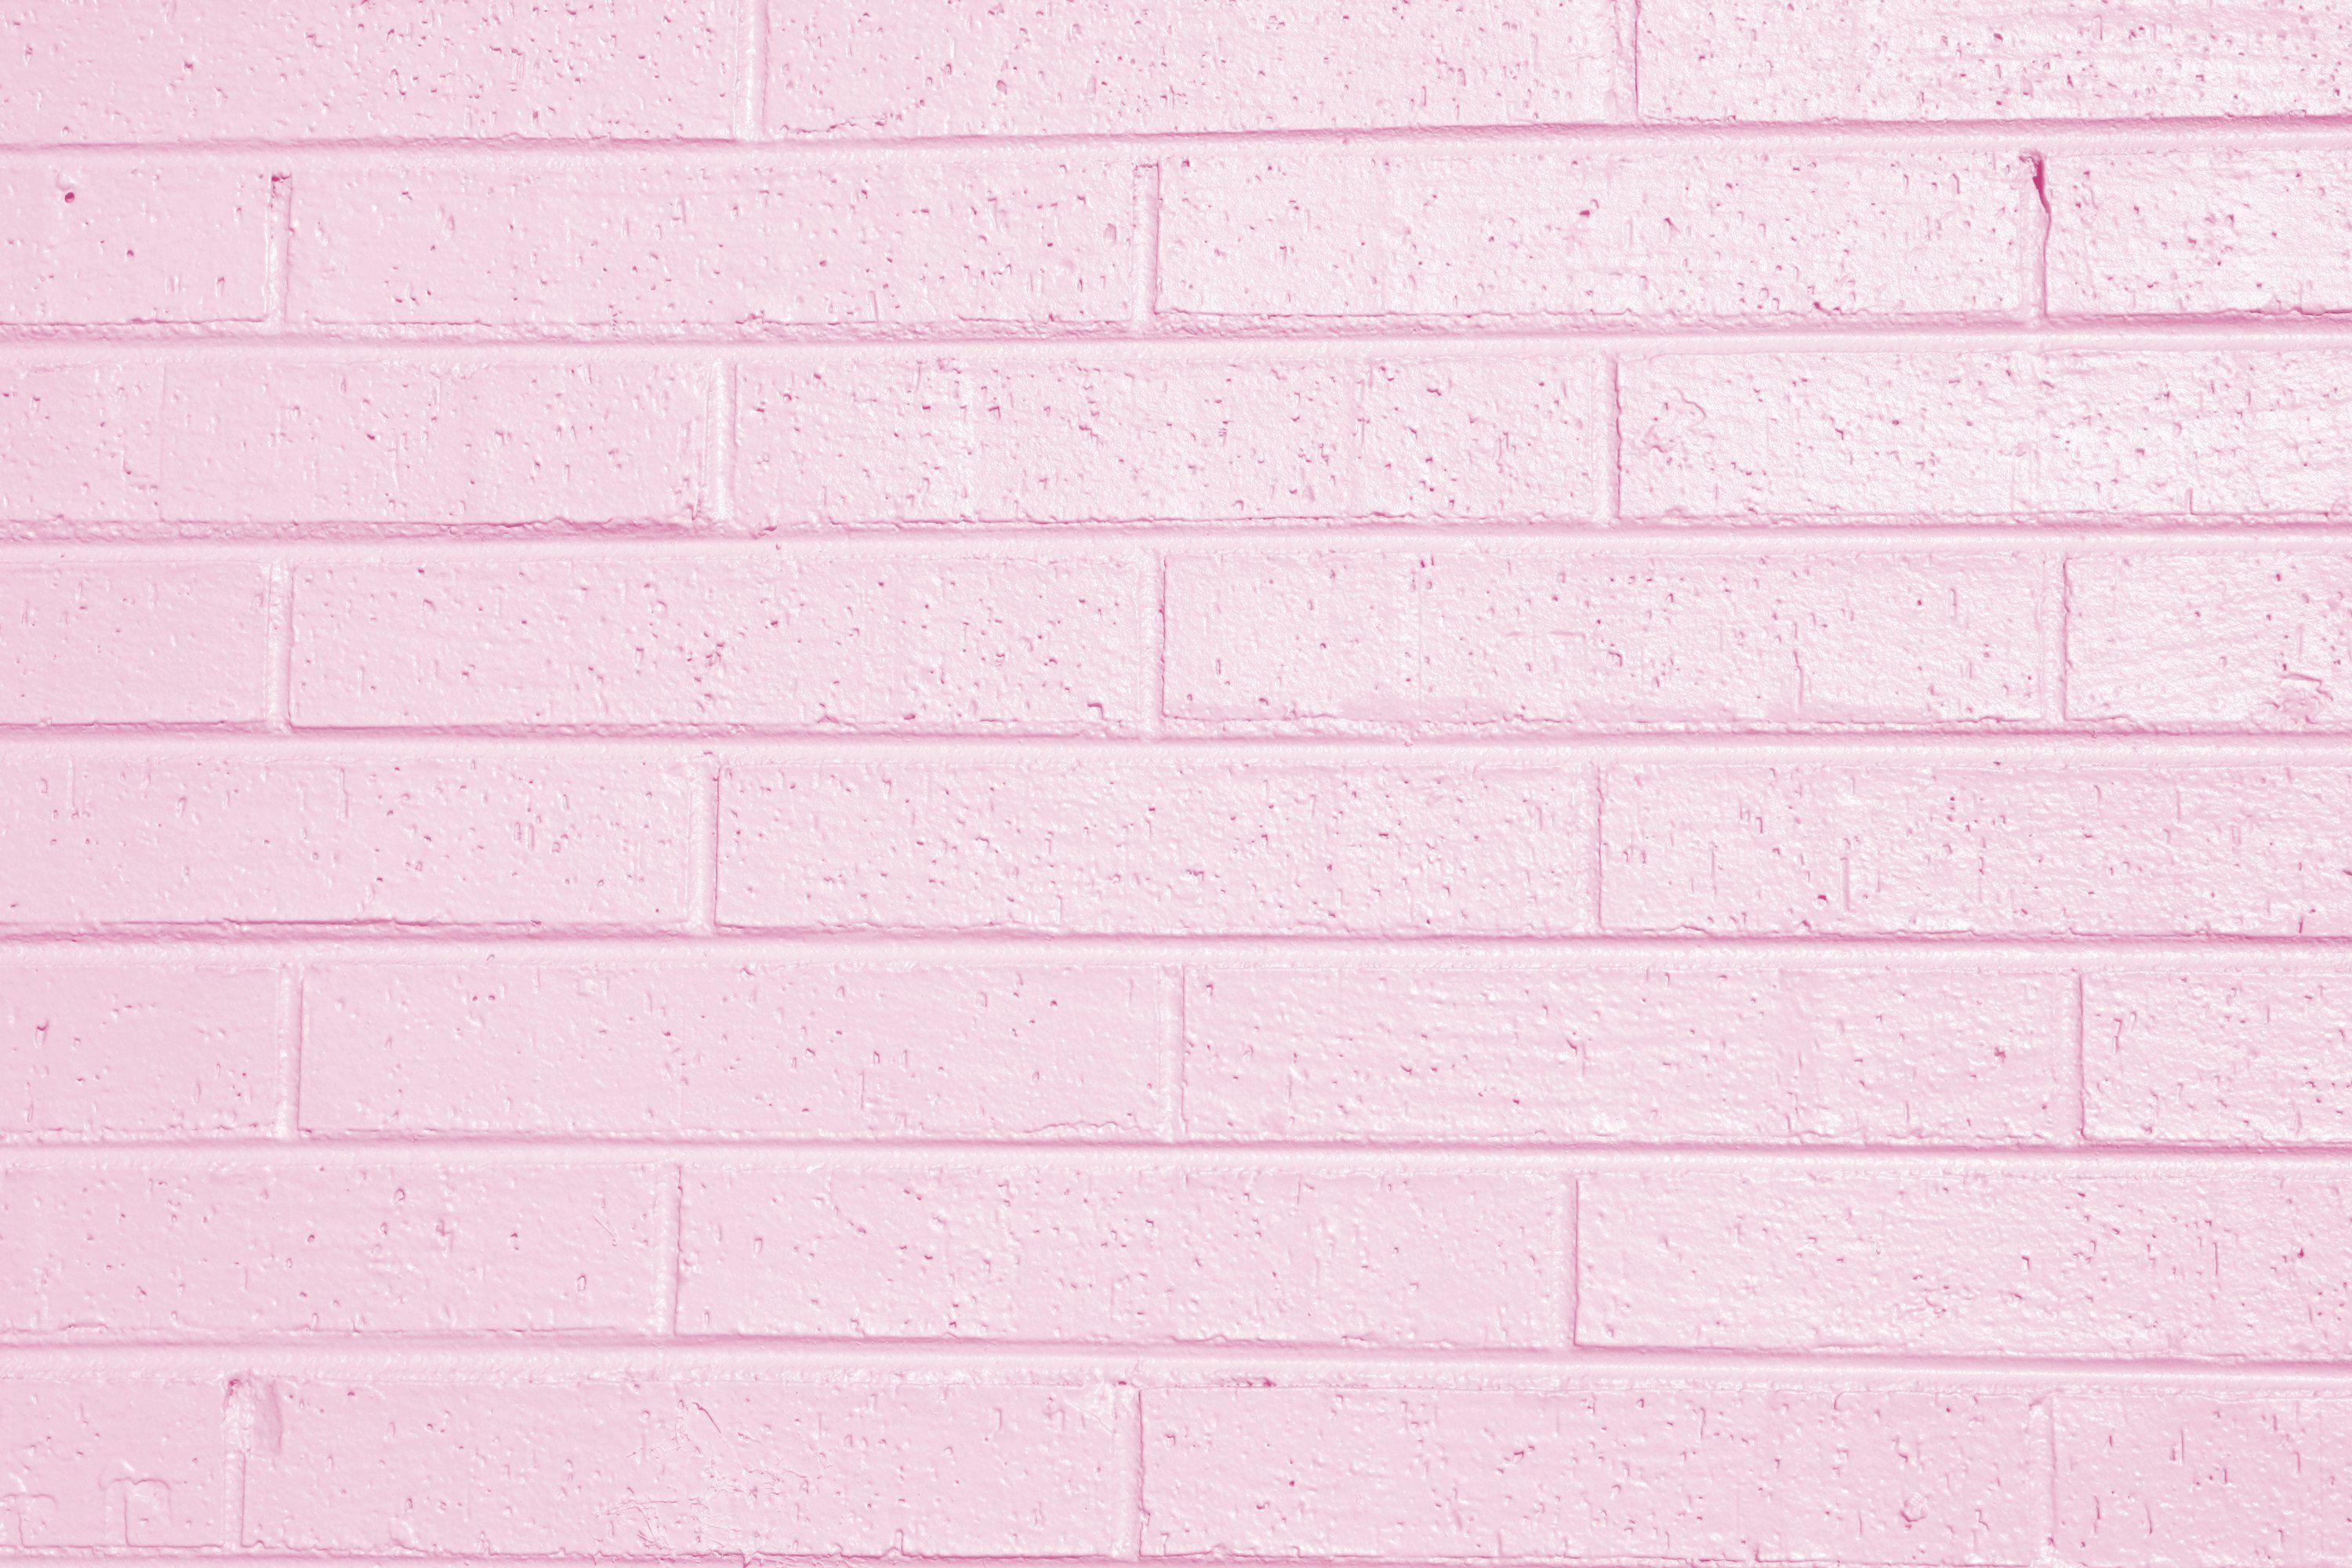 Light Pink Background Wallpaper Pink Wallpaper Backgrounds Pastel Pink Wallpaper Pastel Pink Aesthetic